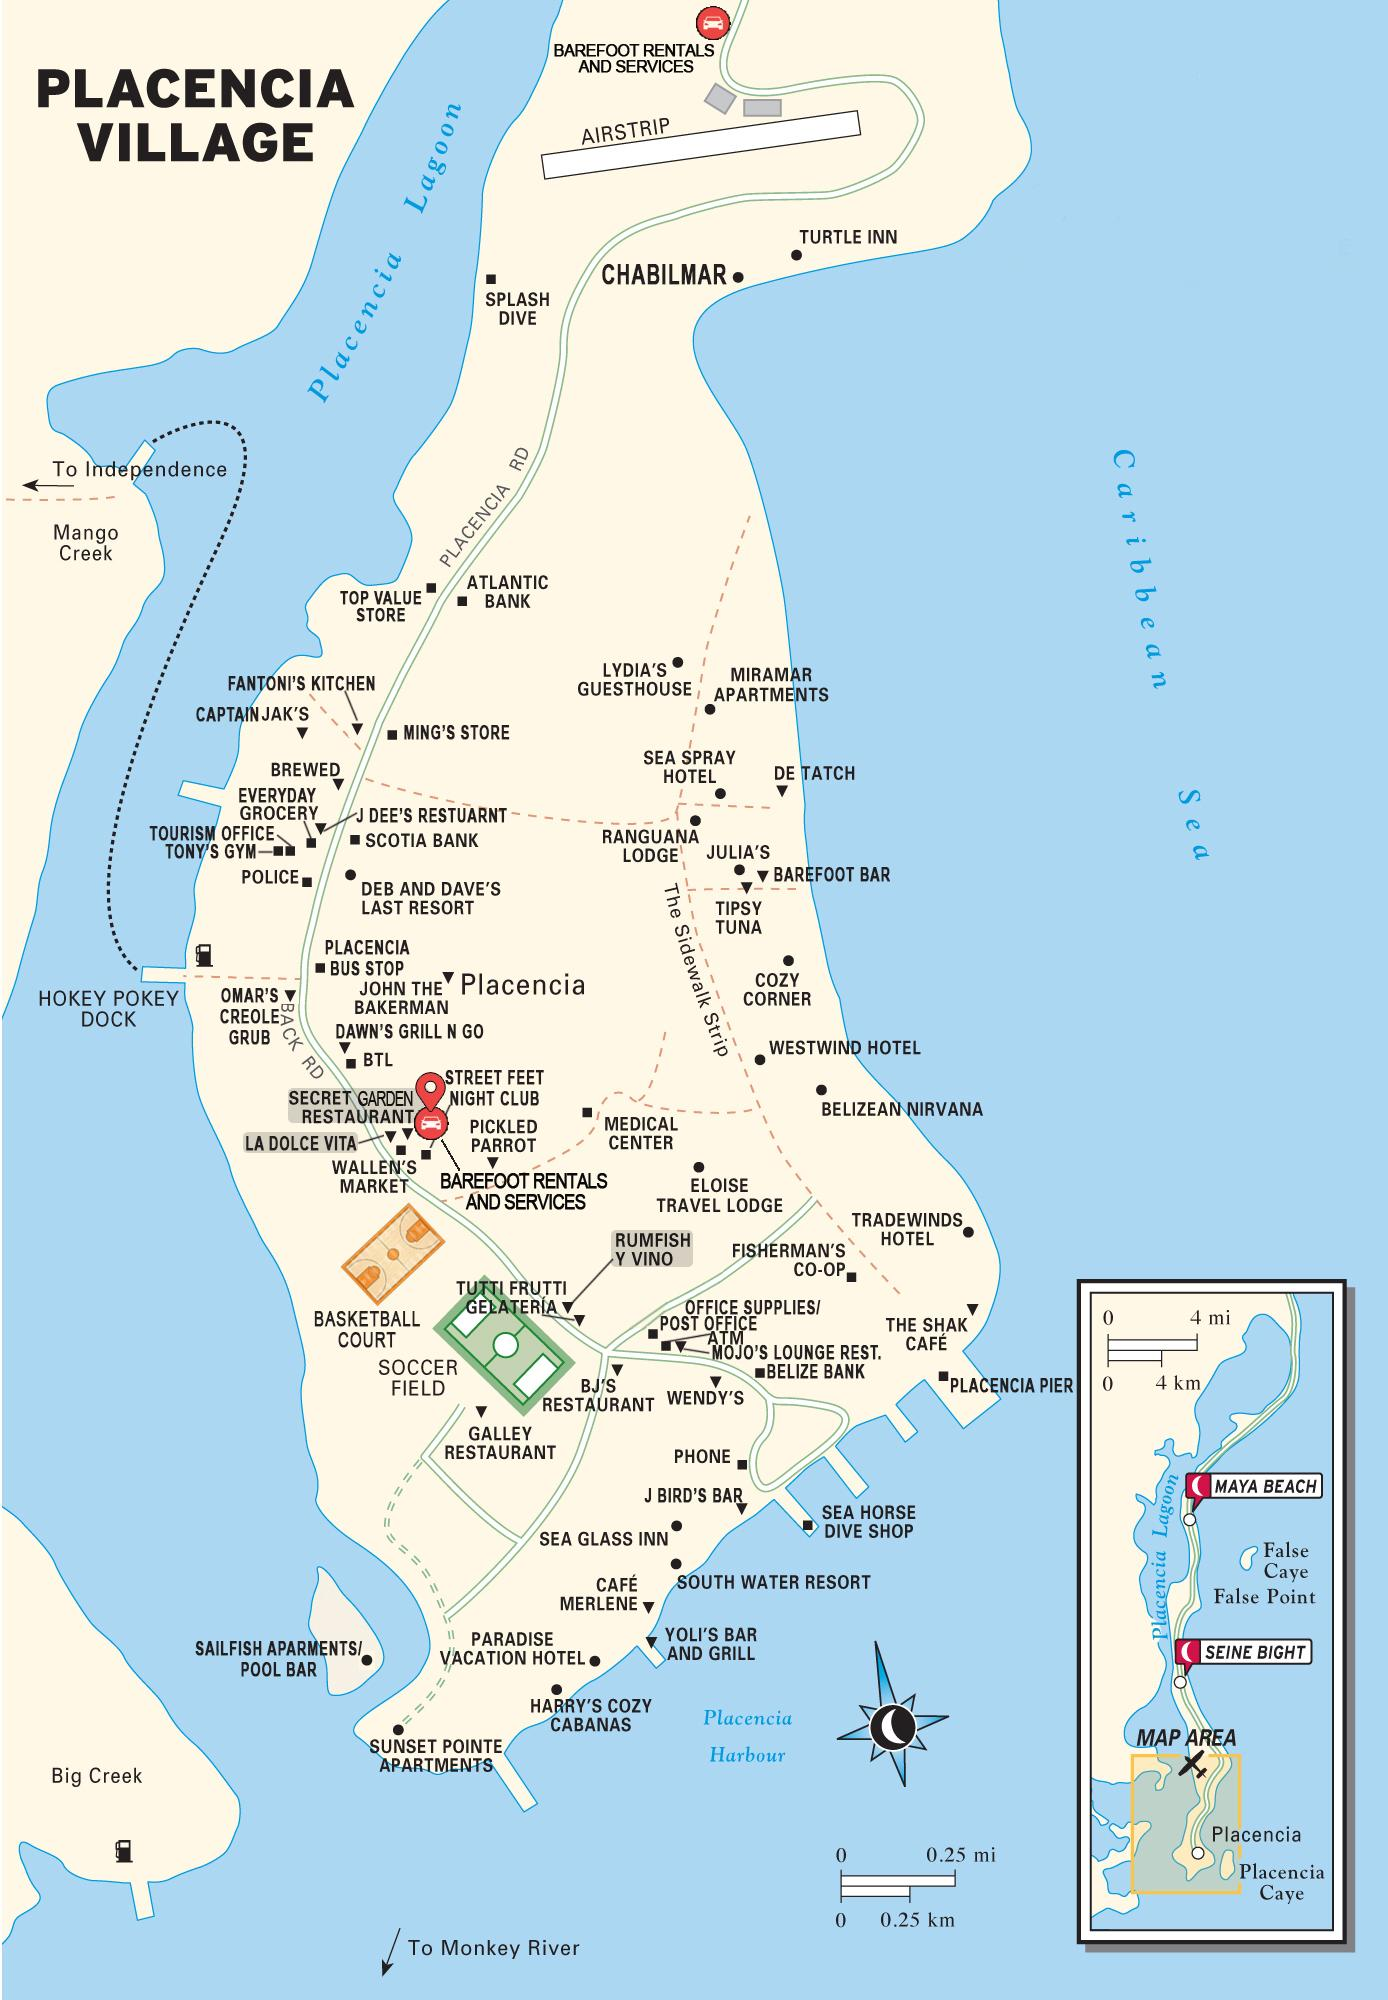 Belize Karte.Placencia Belize Map Karte Von Placencia Village Belize